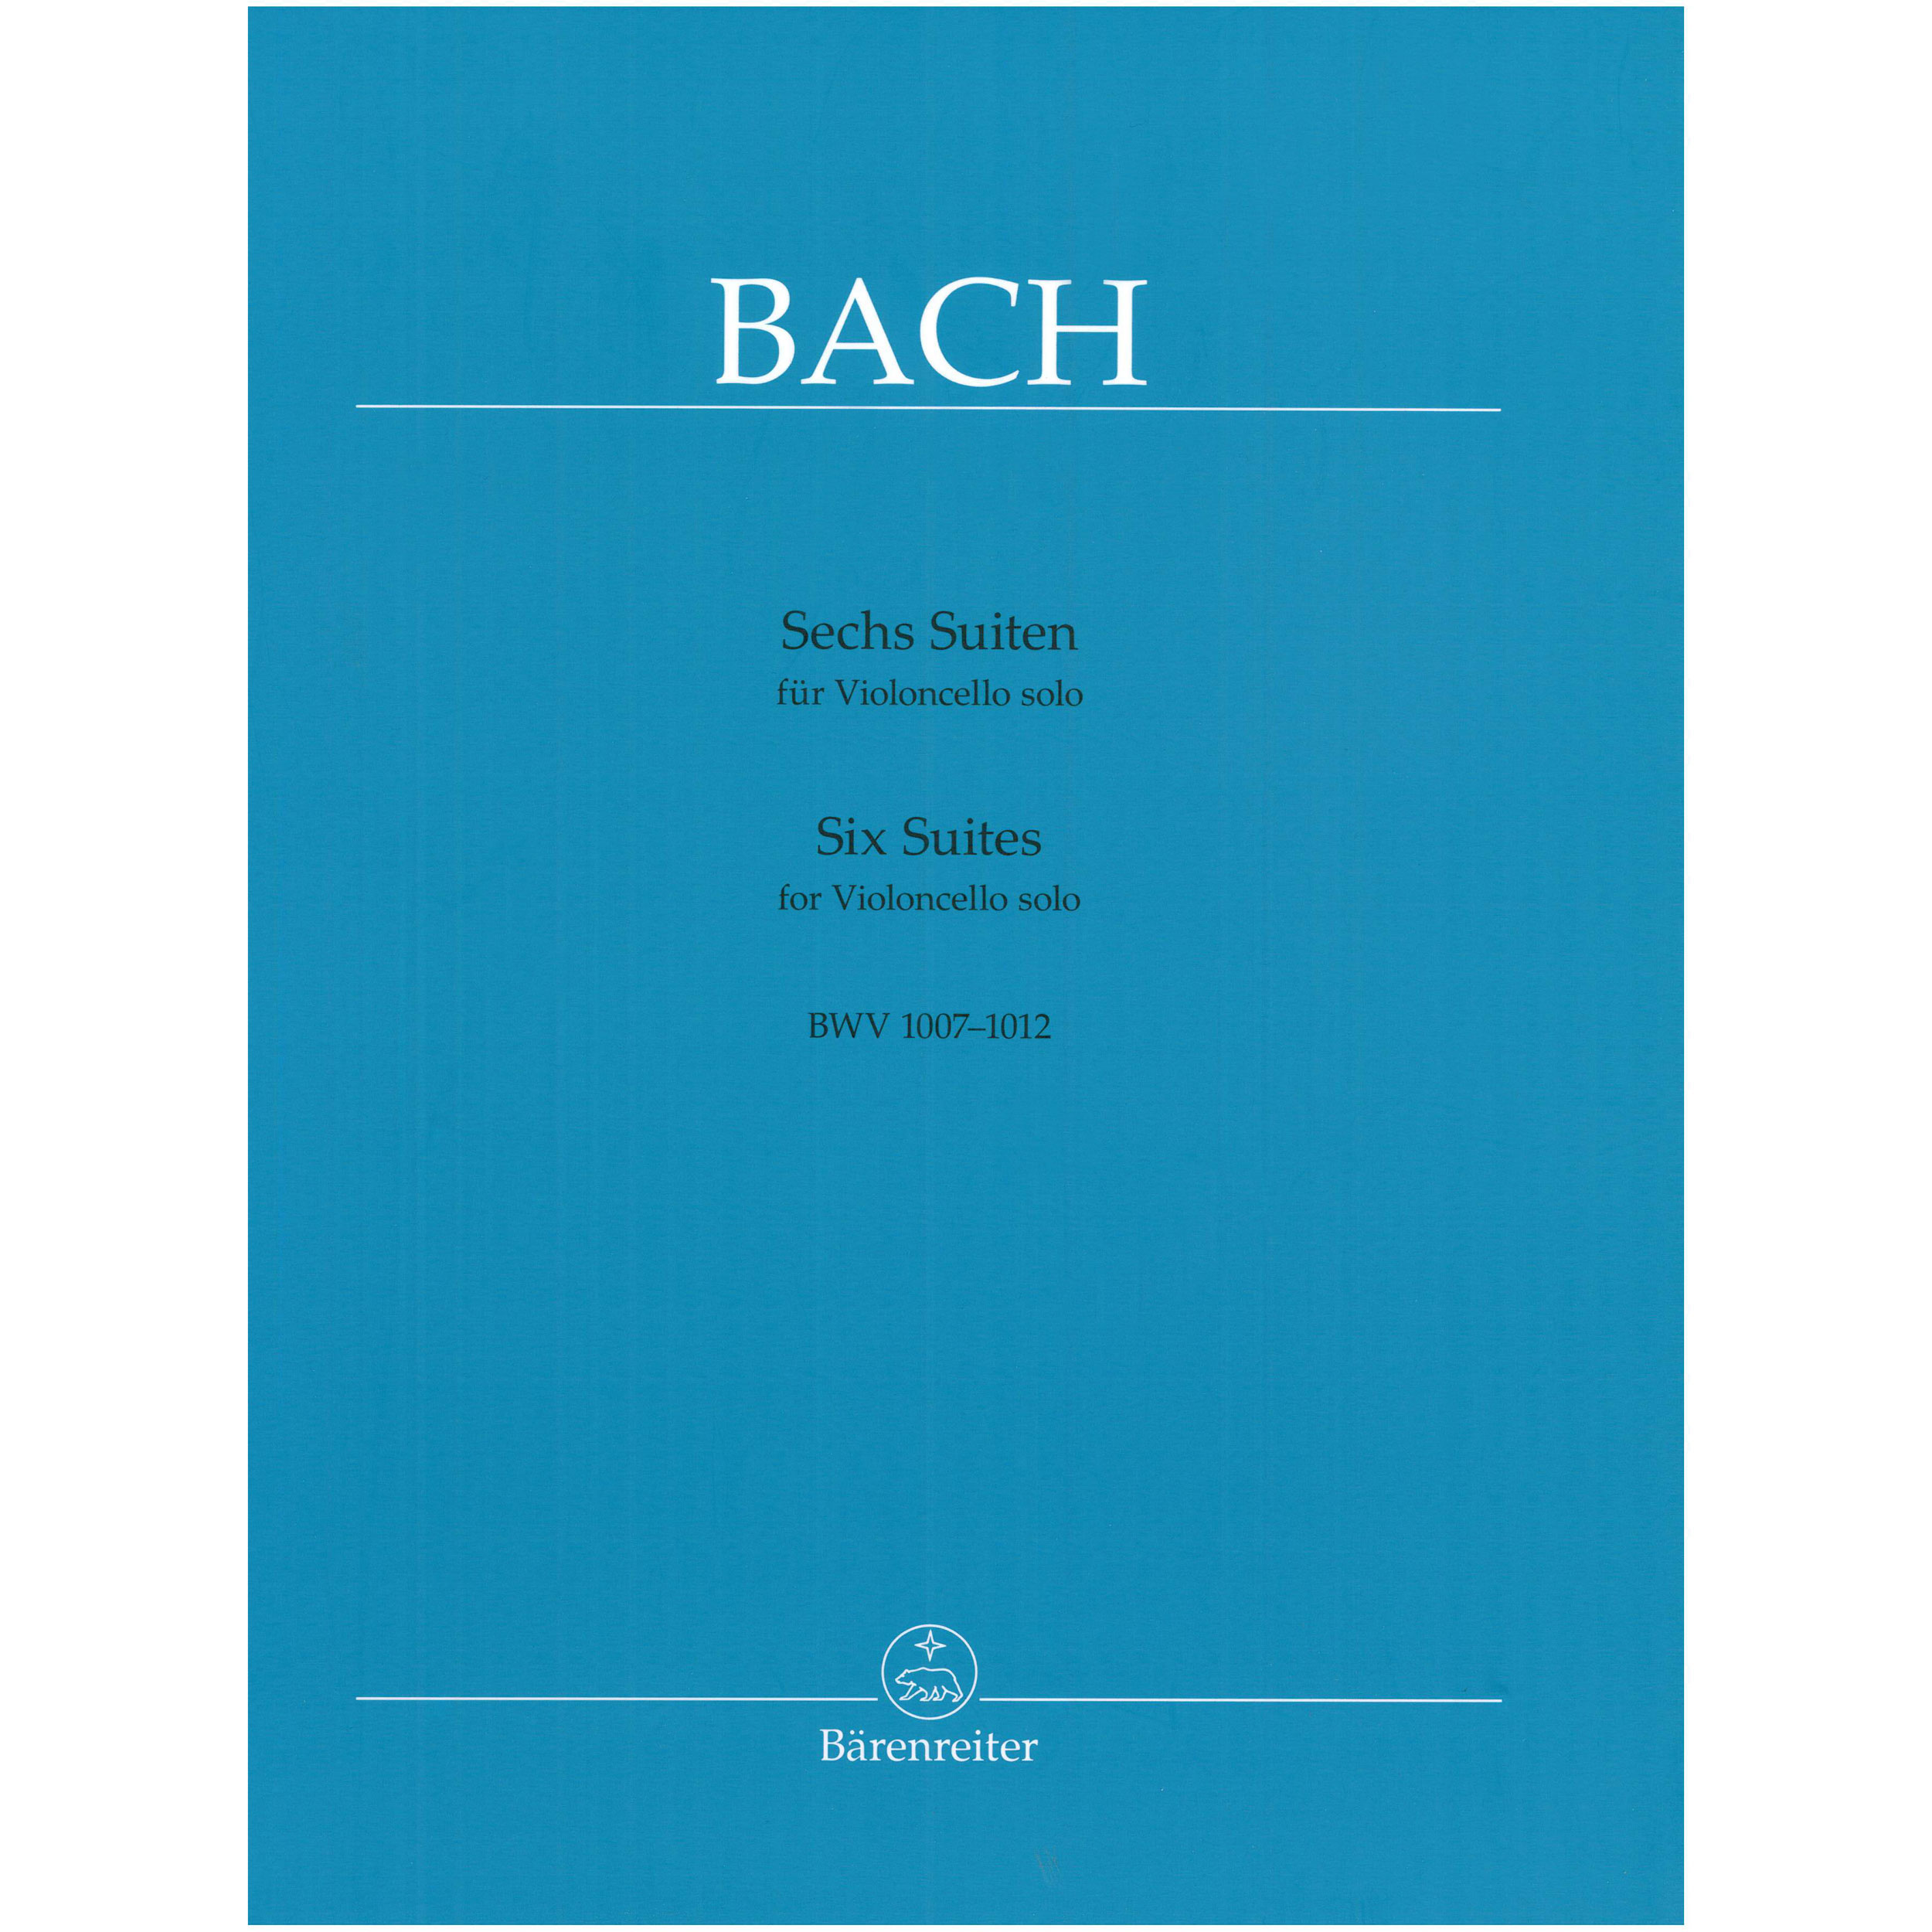 Six Suites for Violincello by J. S. Bach ed. Wenzinger